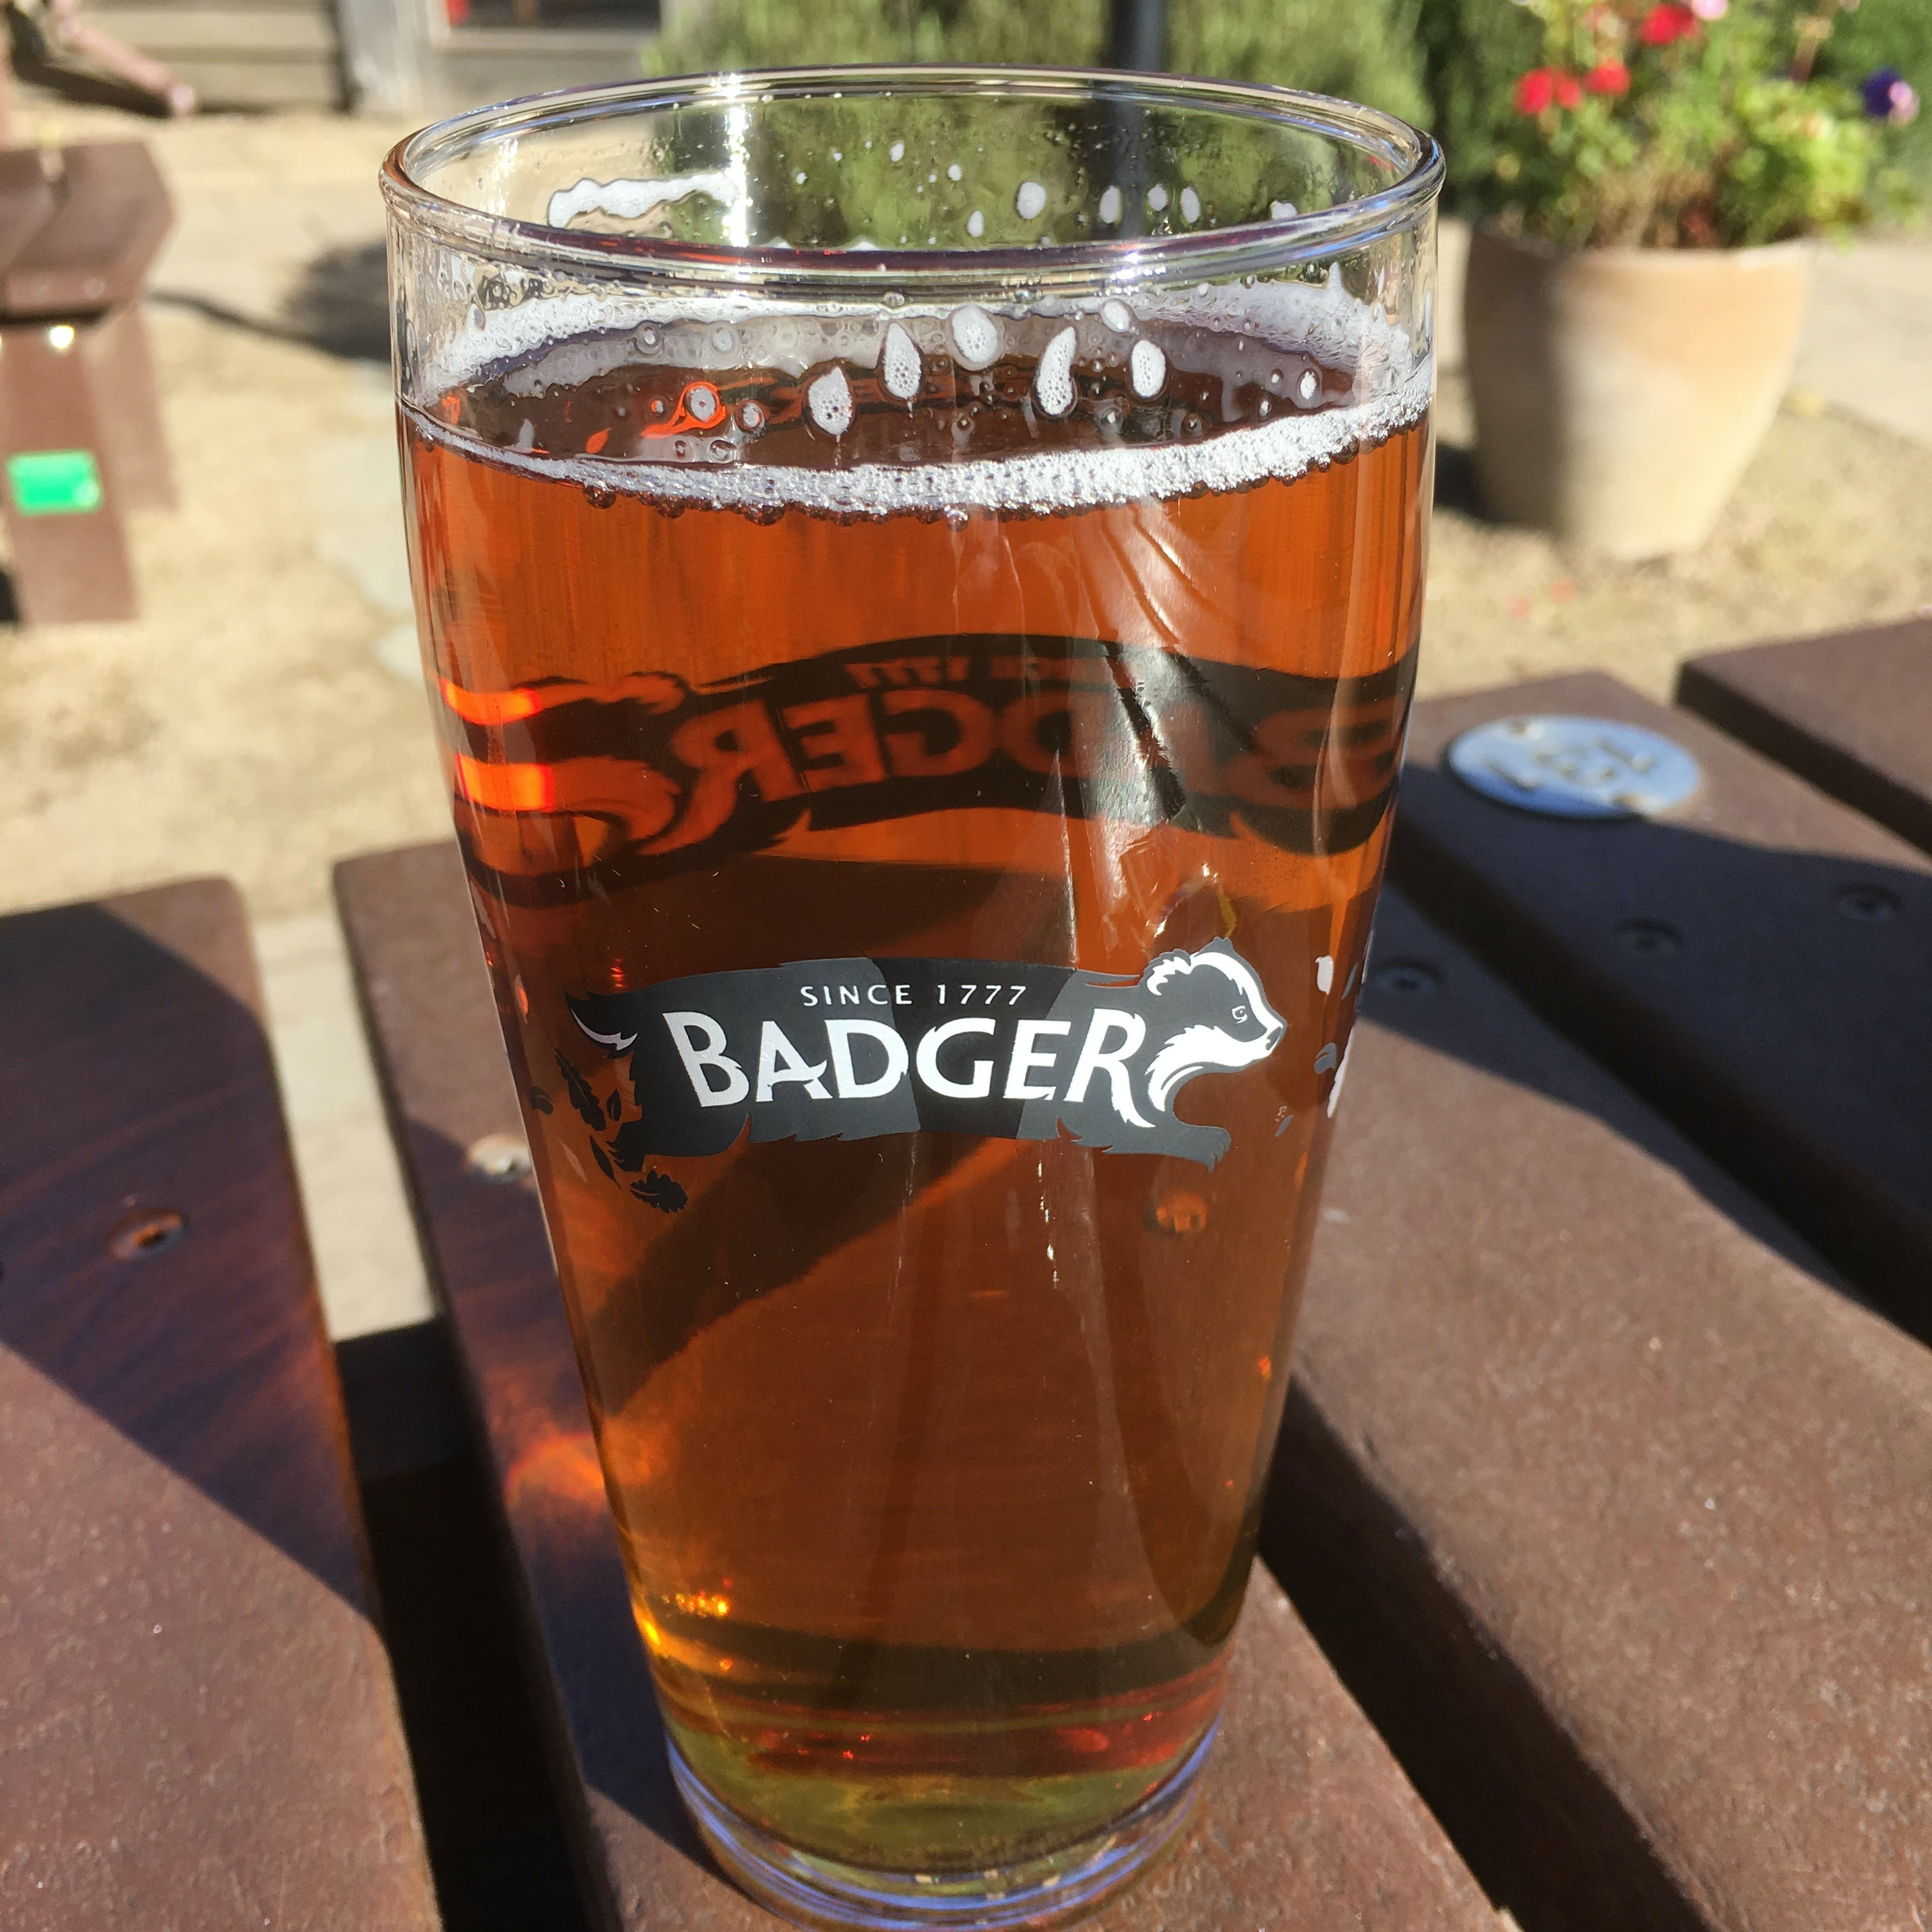 Free stock photo of Badger Beer Pint